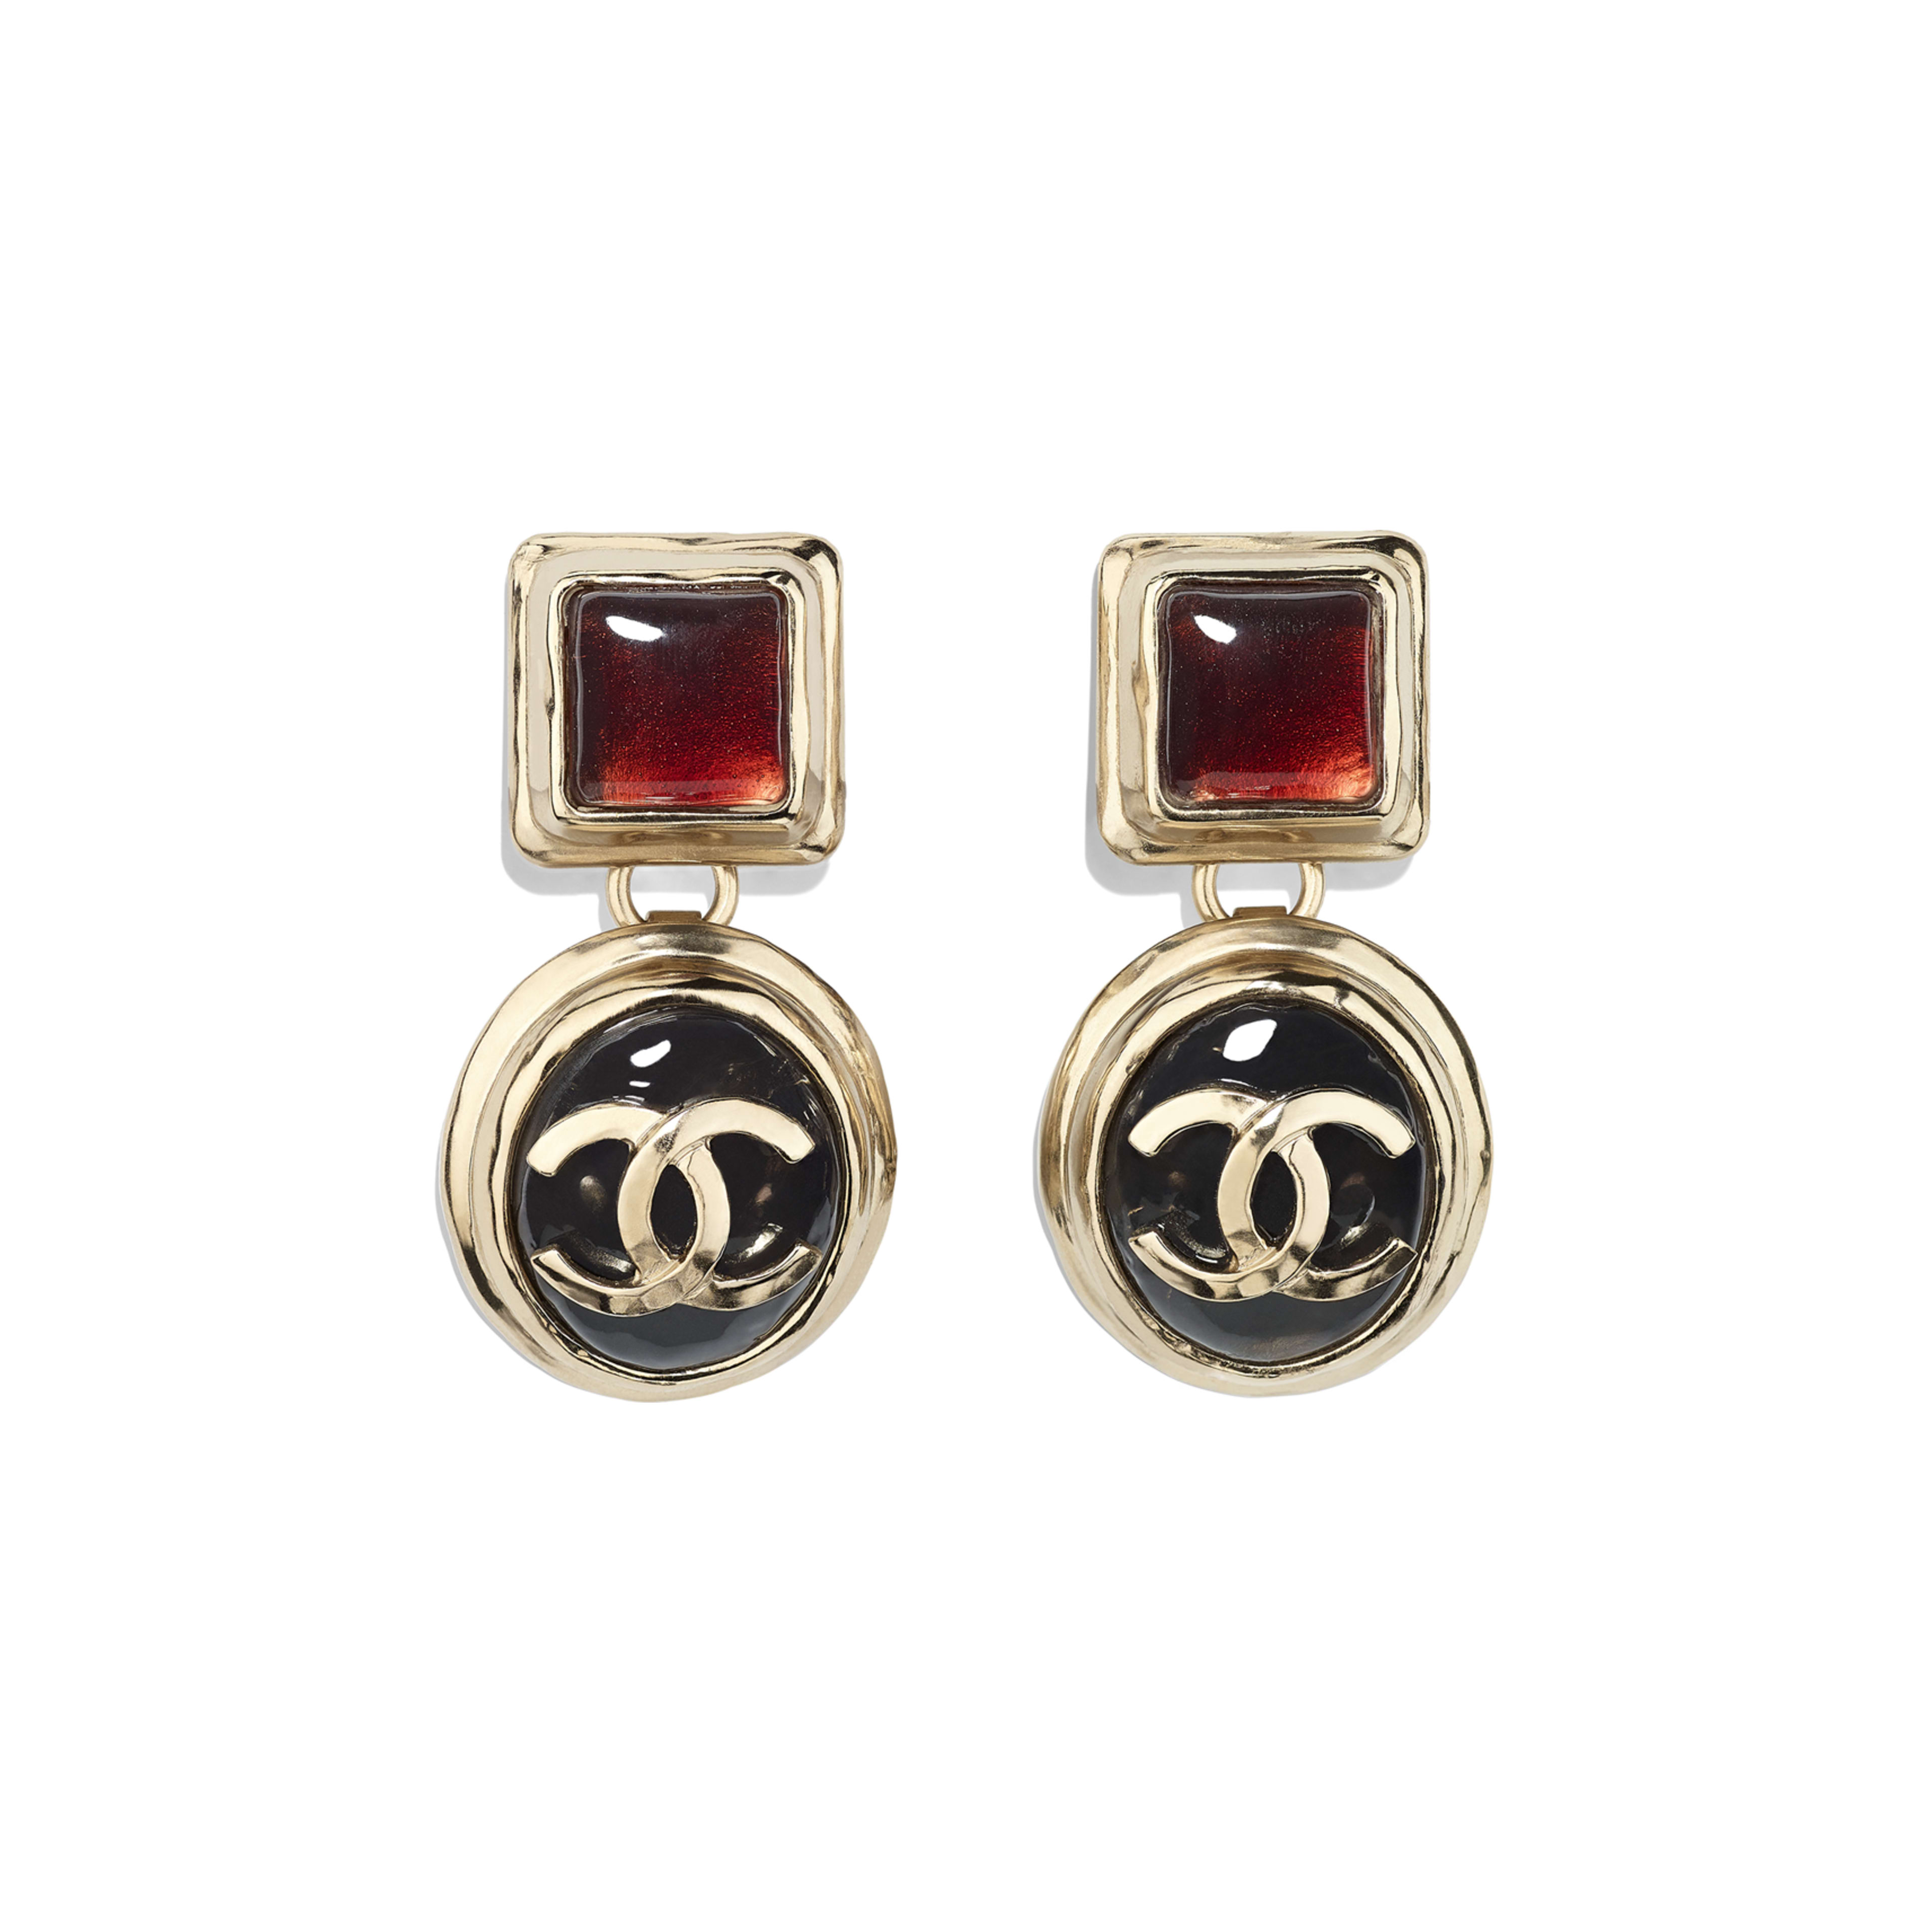 Clip-On Earrings - Gold, Black & Burgundy - Metal & Resin - Default view - see full sized version